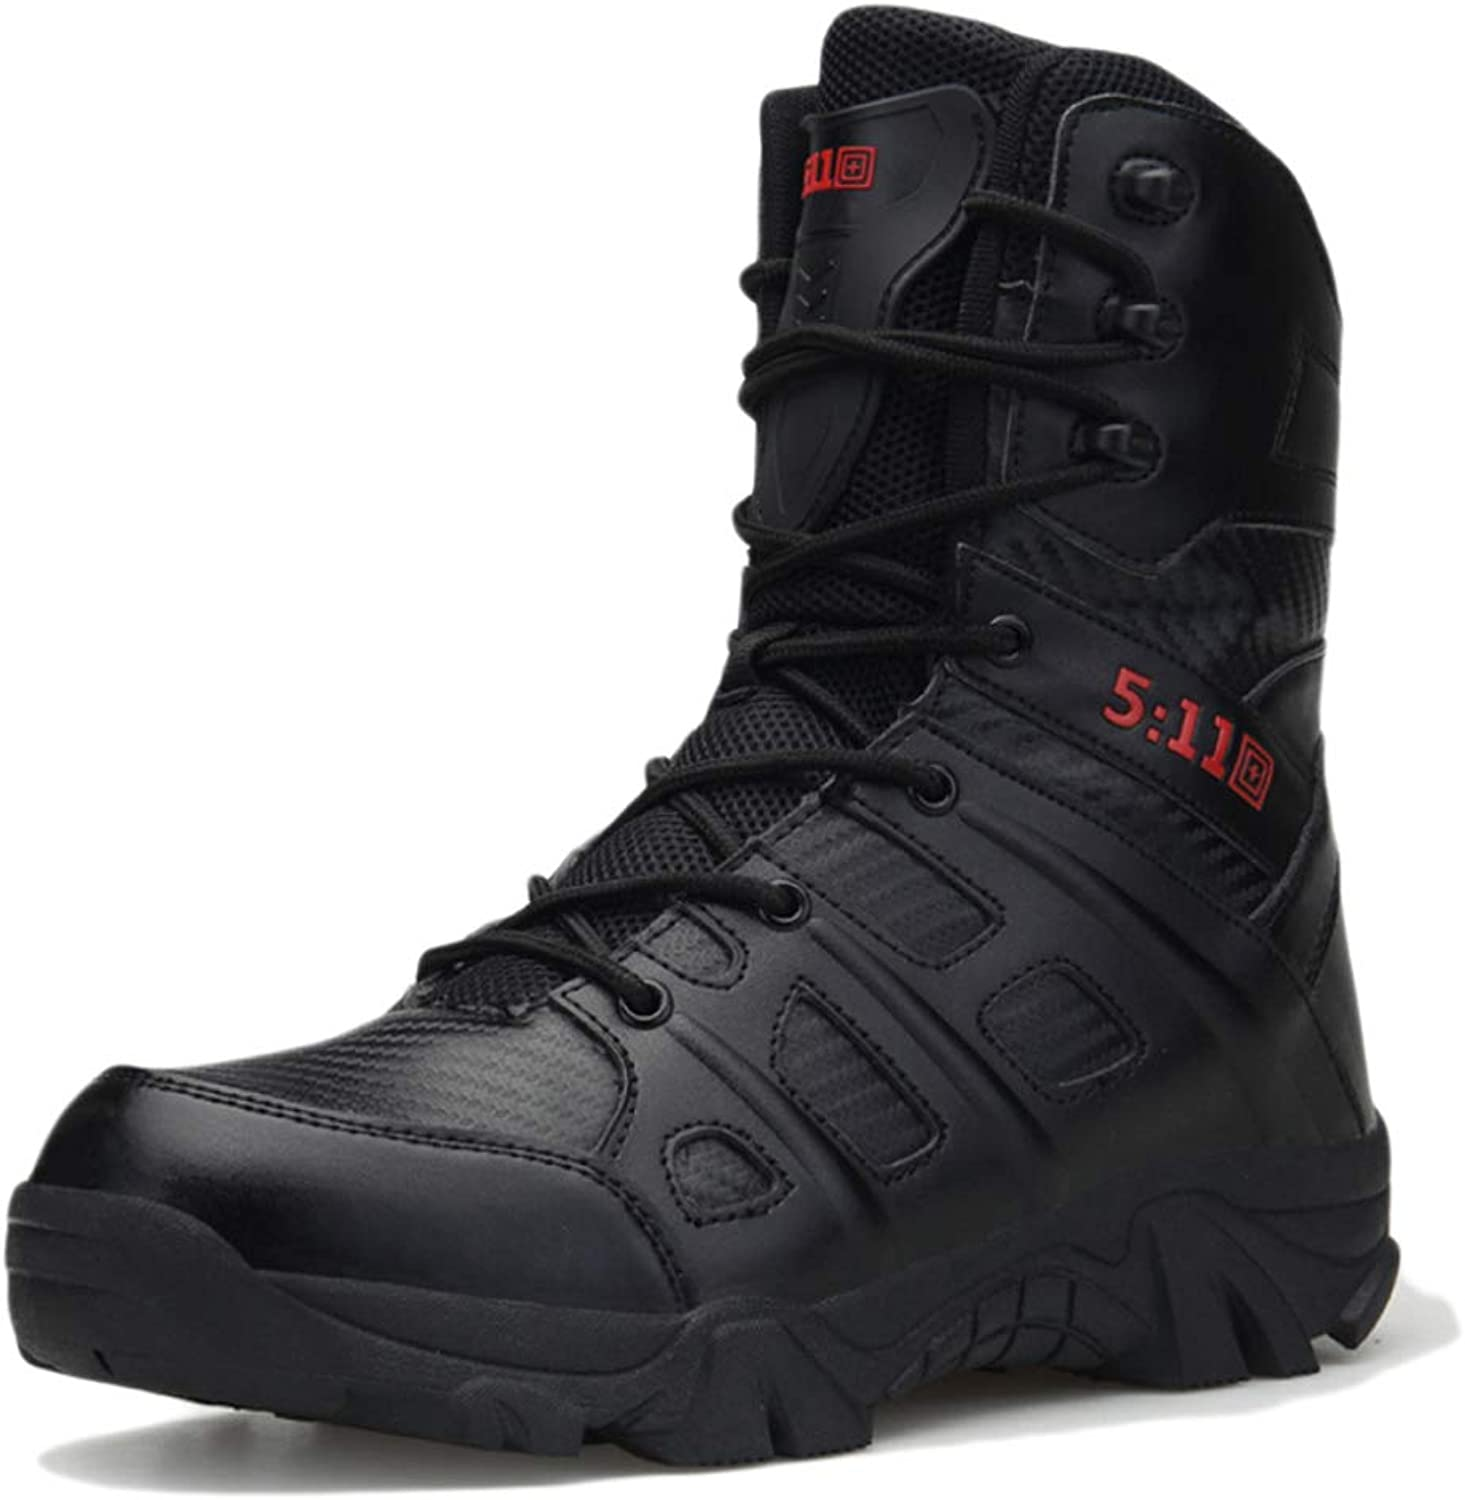 Mens High Top shoes Outdoor Mountaineering Boots Military Police Army Combat Boot Armed Tactics Security Footwear Comfortable Breathable